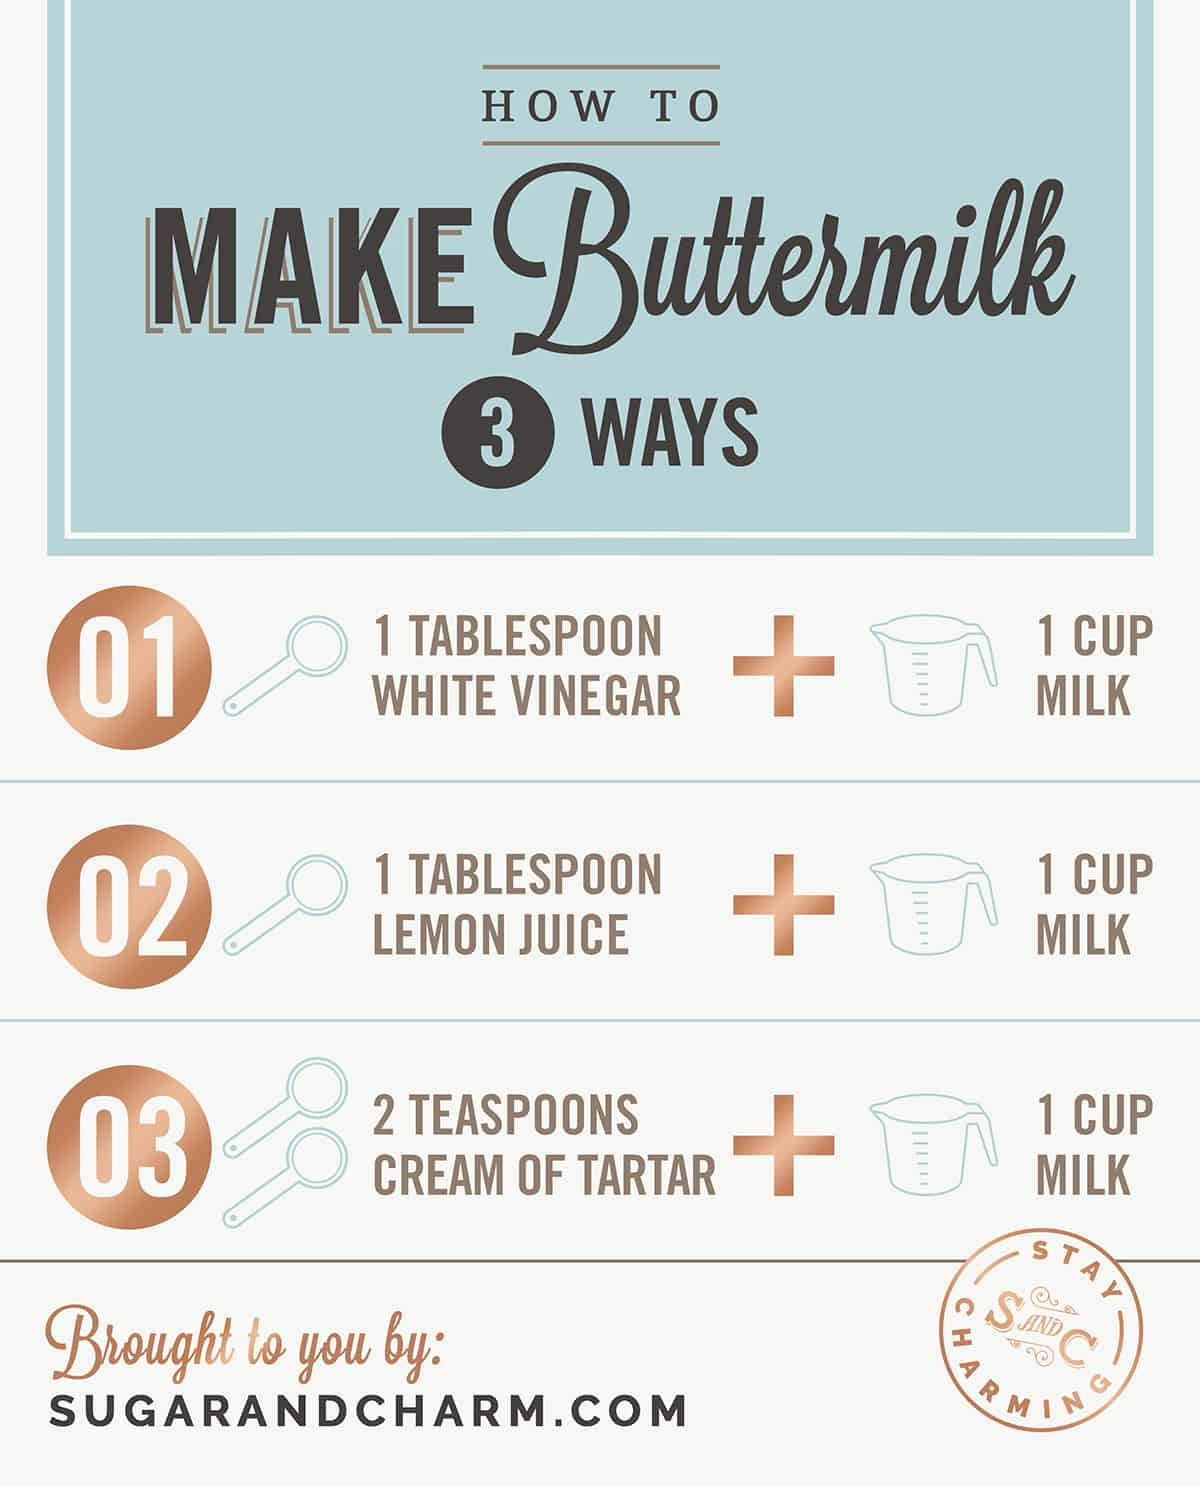 graphic showing how to make buttermilk with lemon juice, vinegar or cream of tartar